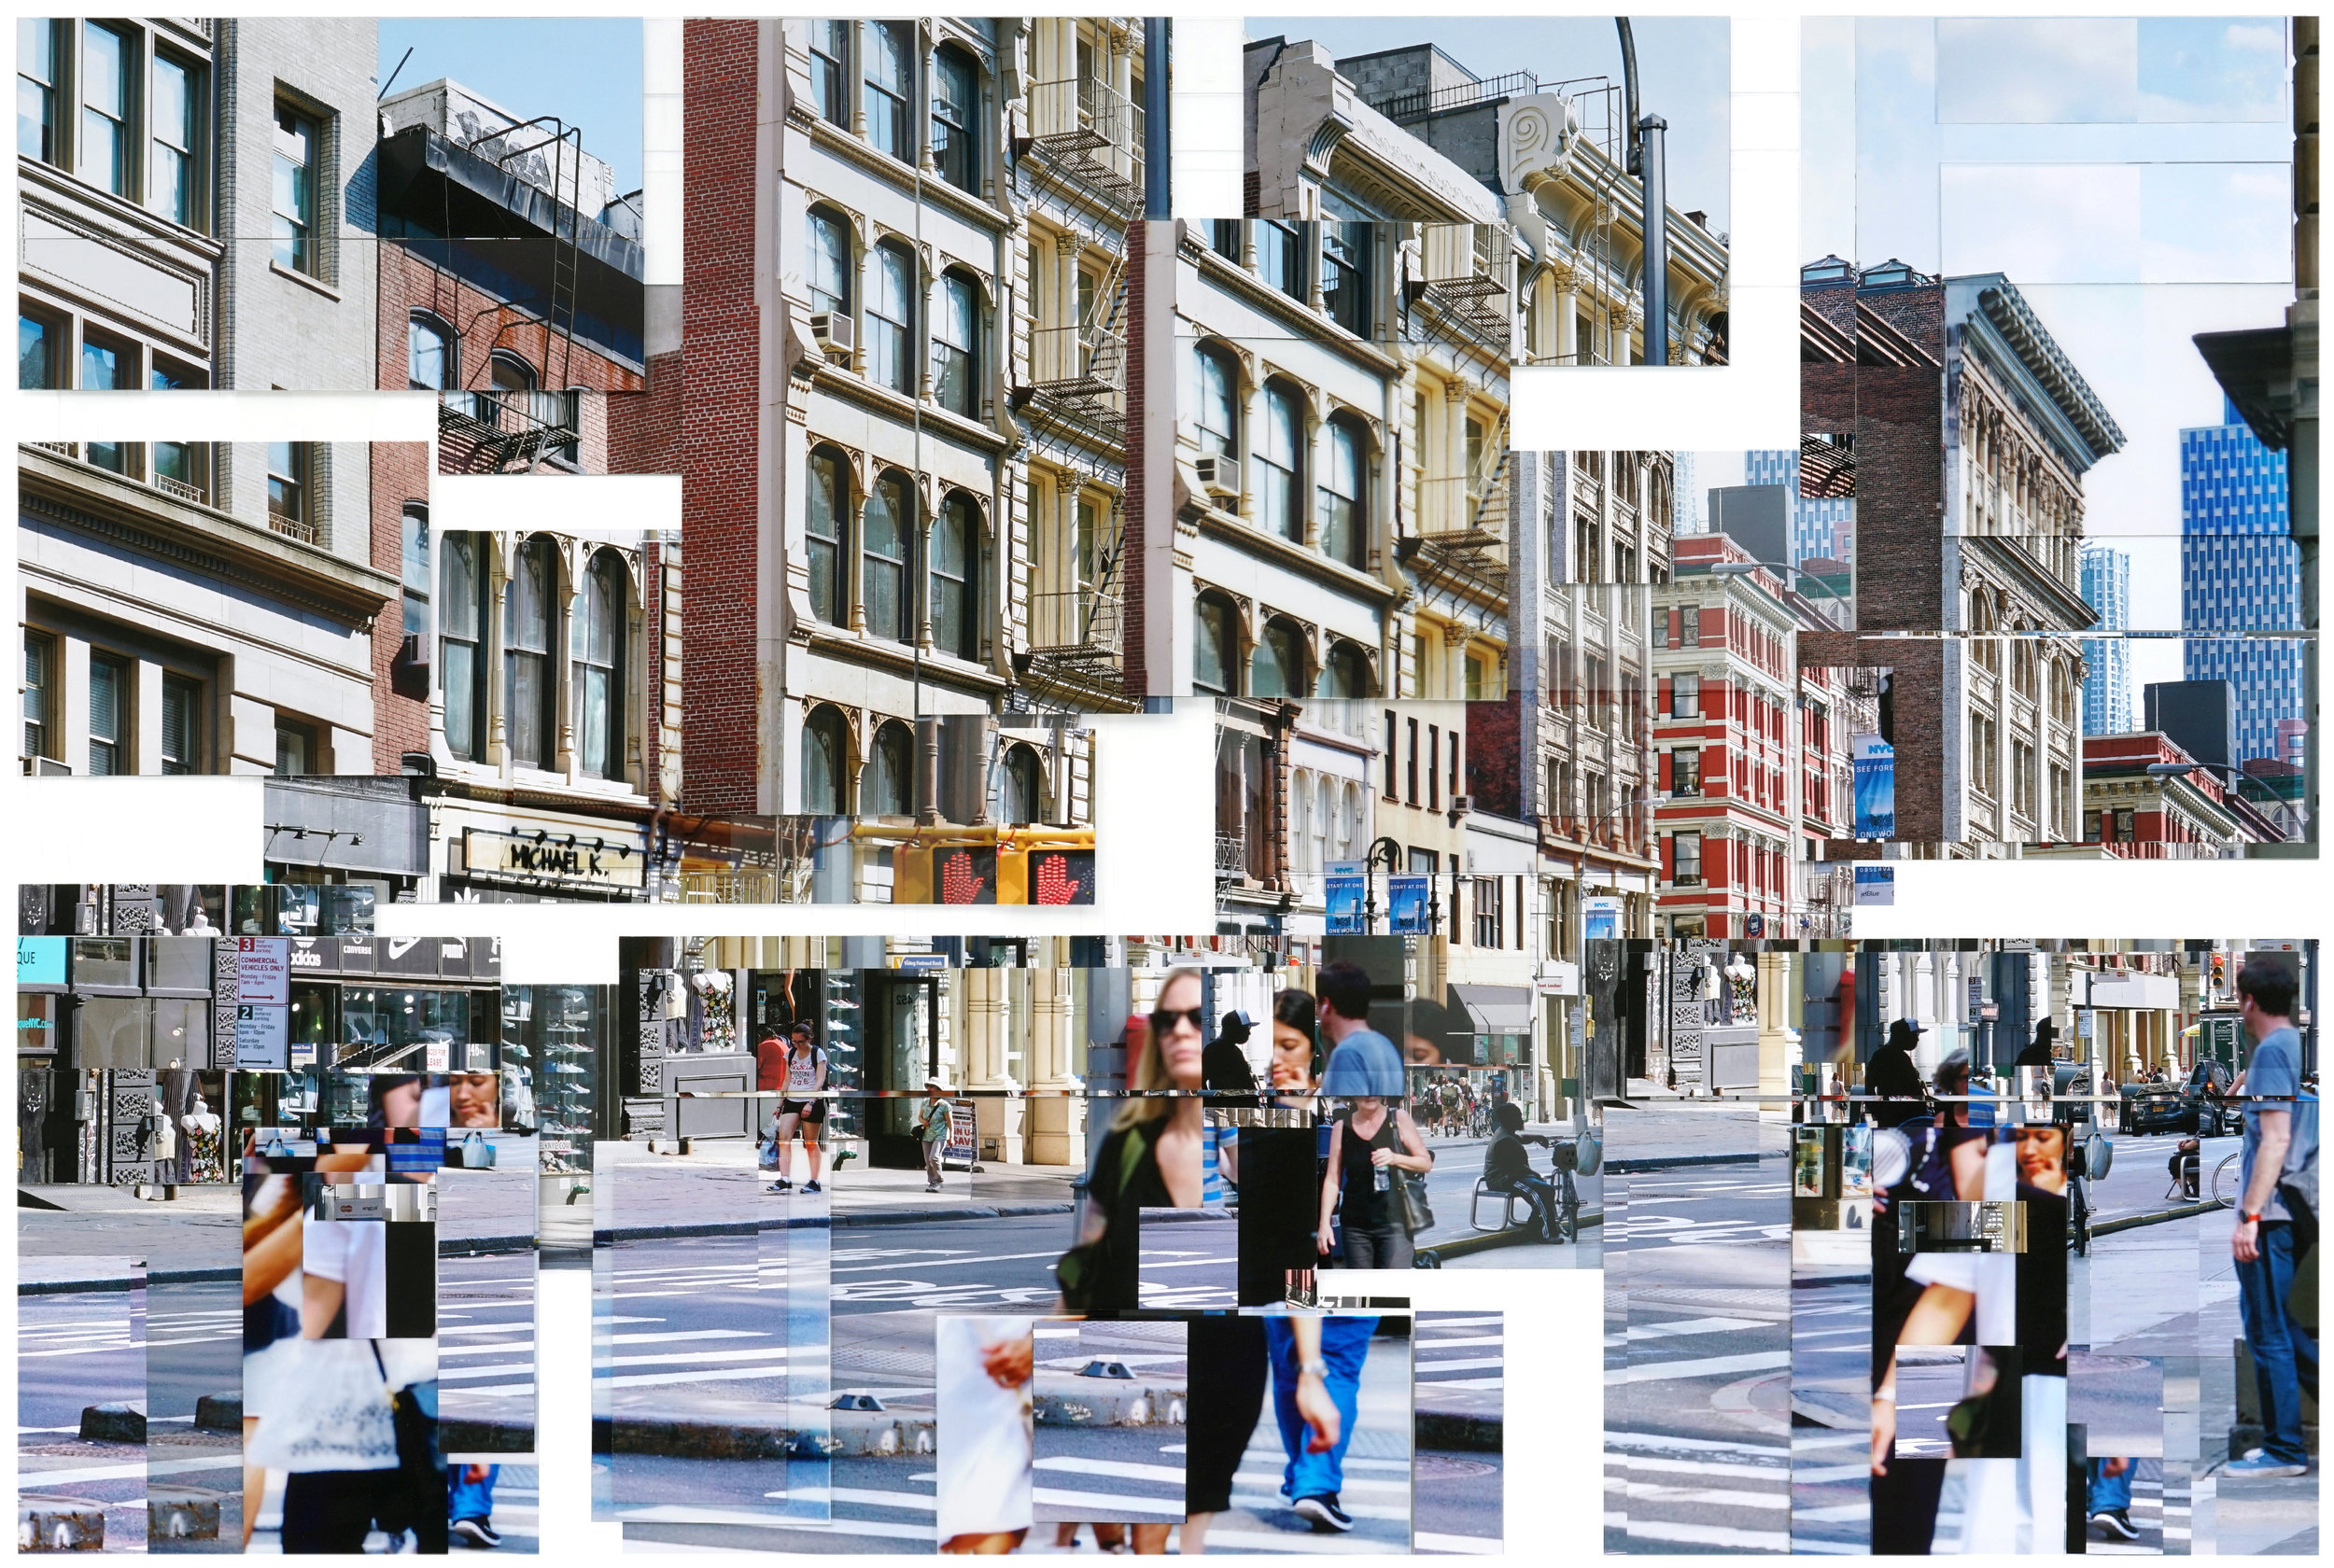 nyc 1736   3/18  40x60in 1x1.5m